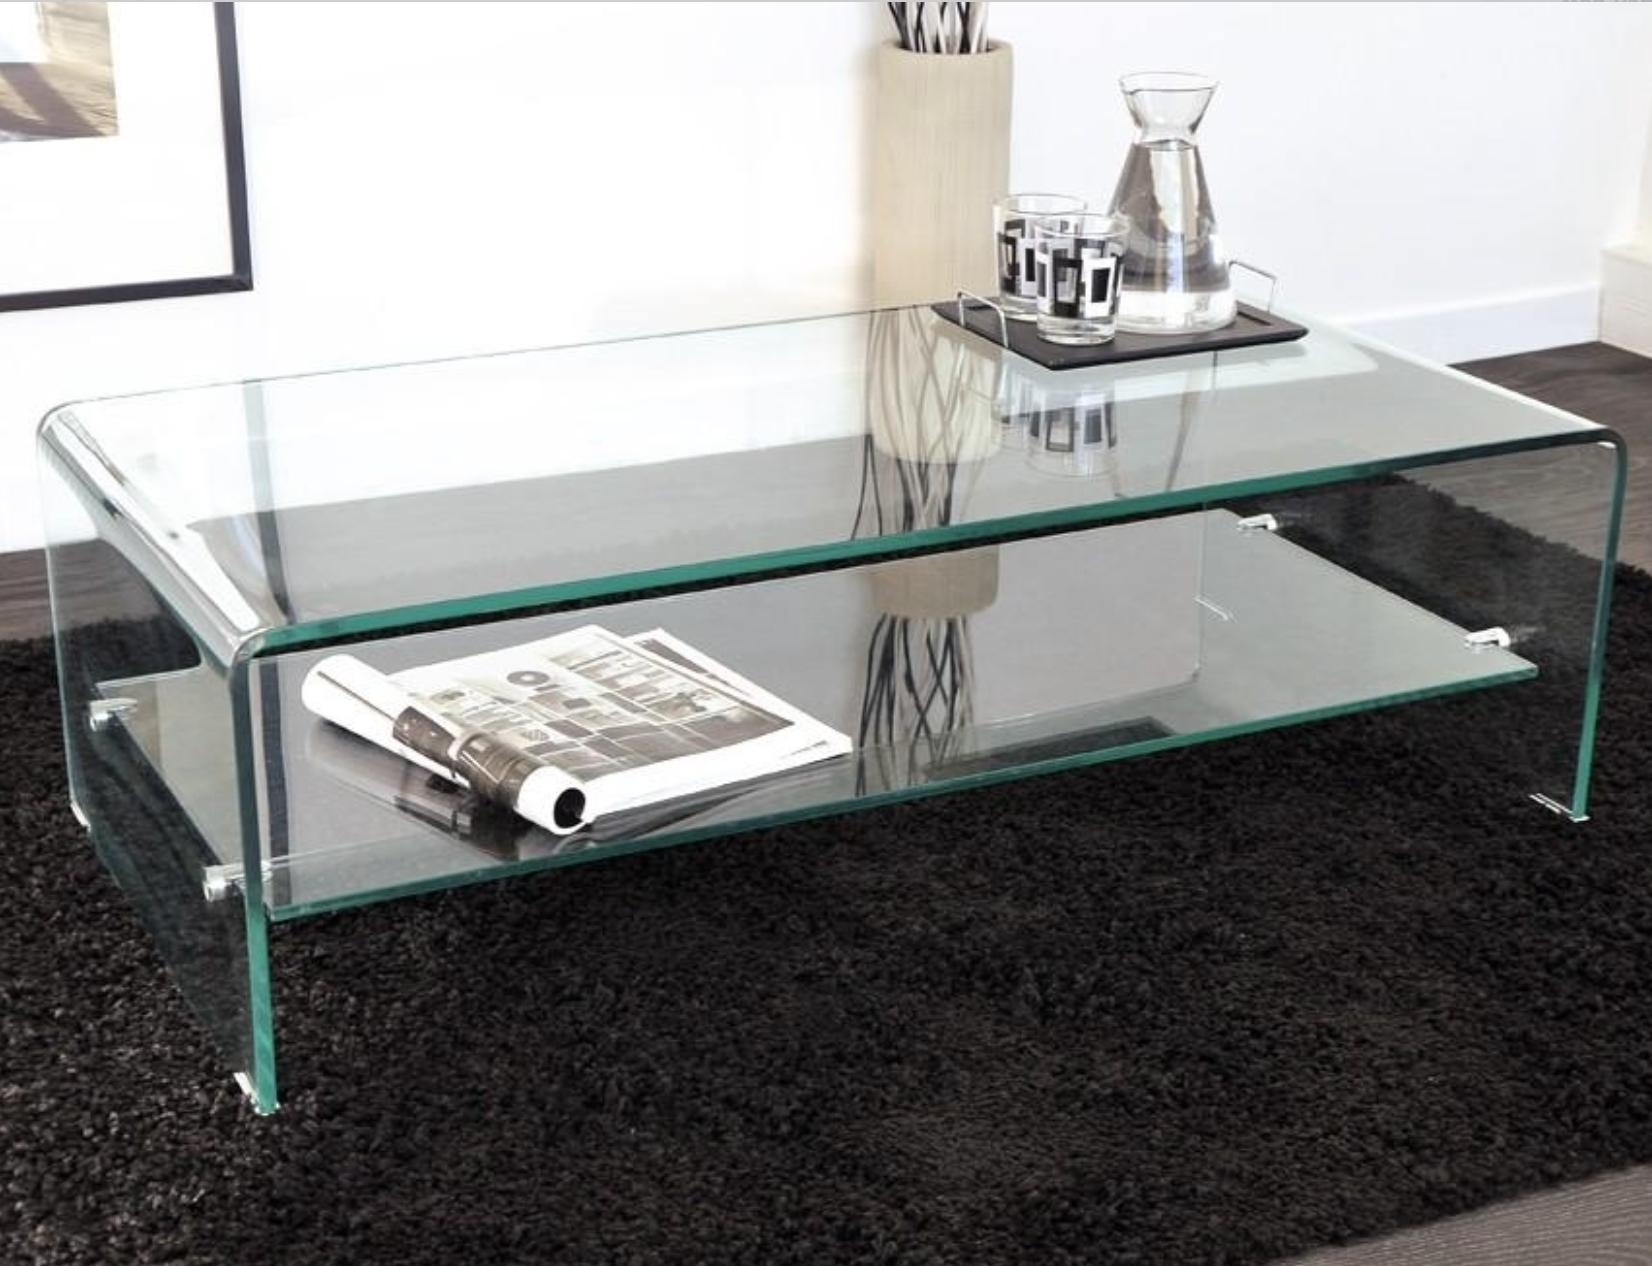 Table basse verre tremp stella for Table tv en verre